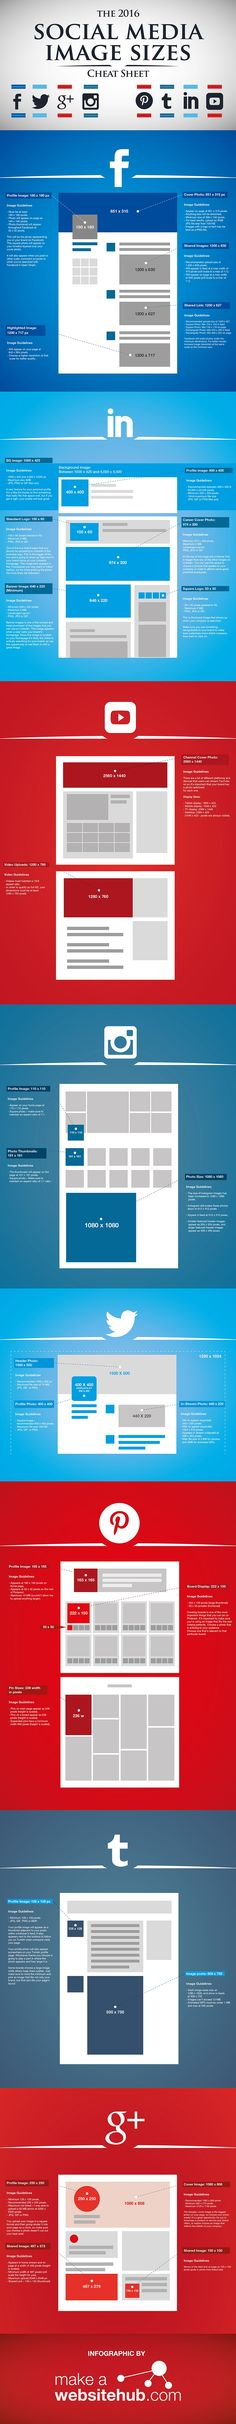 Social Media Cover Photo Dimensions 2016 - infographic